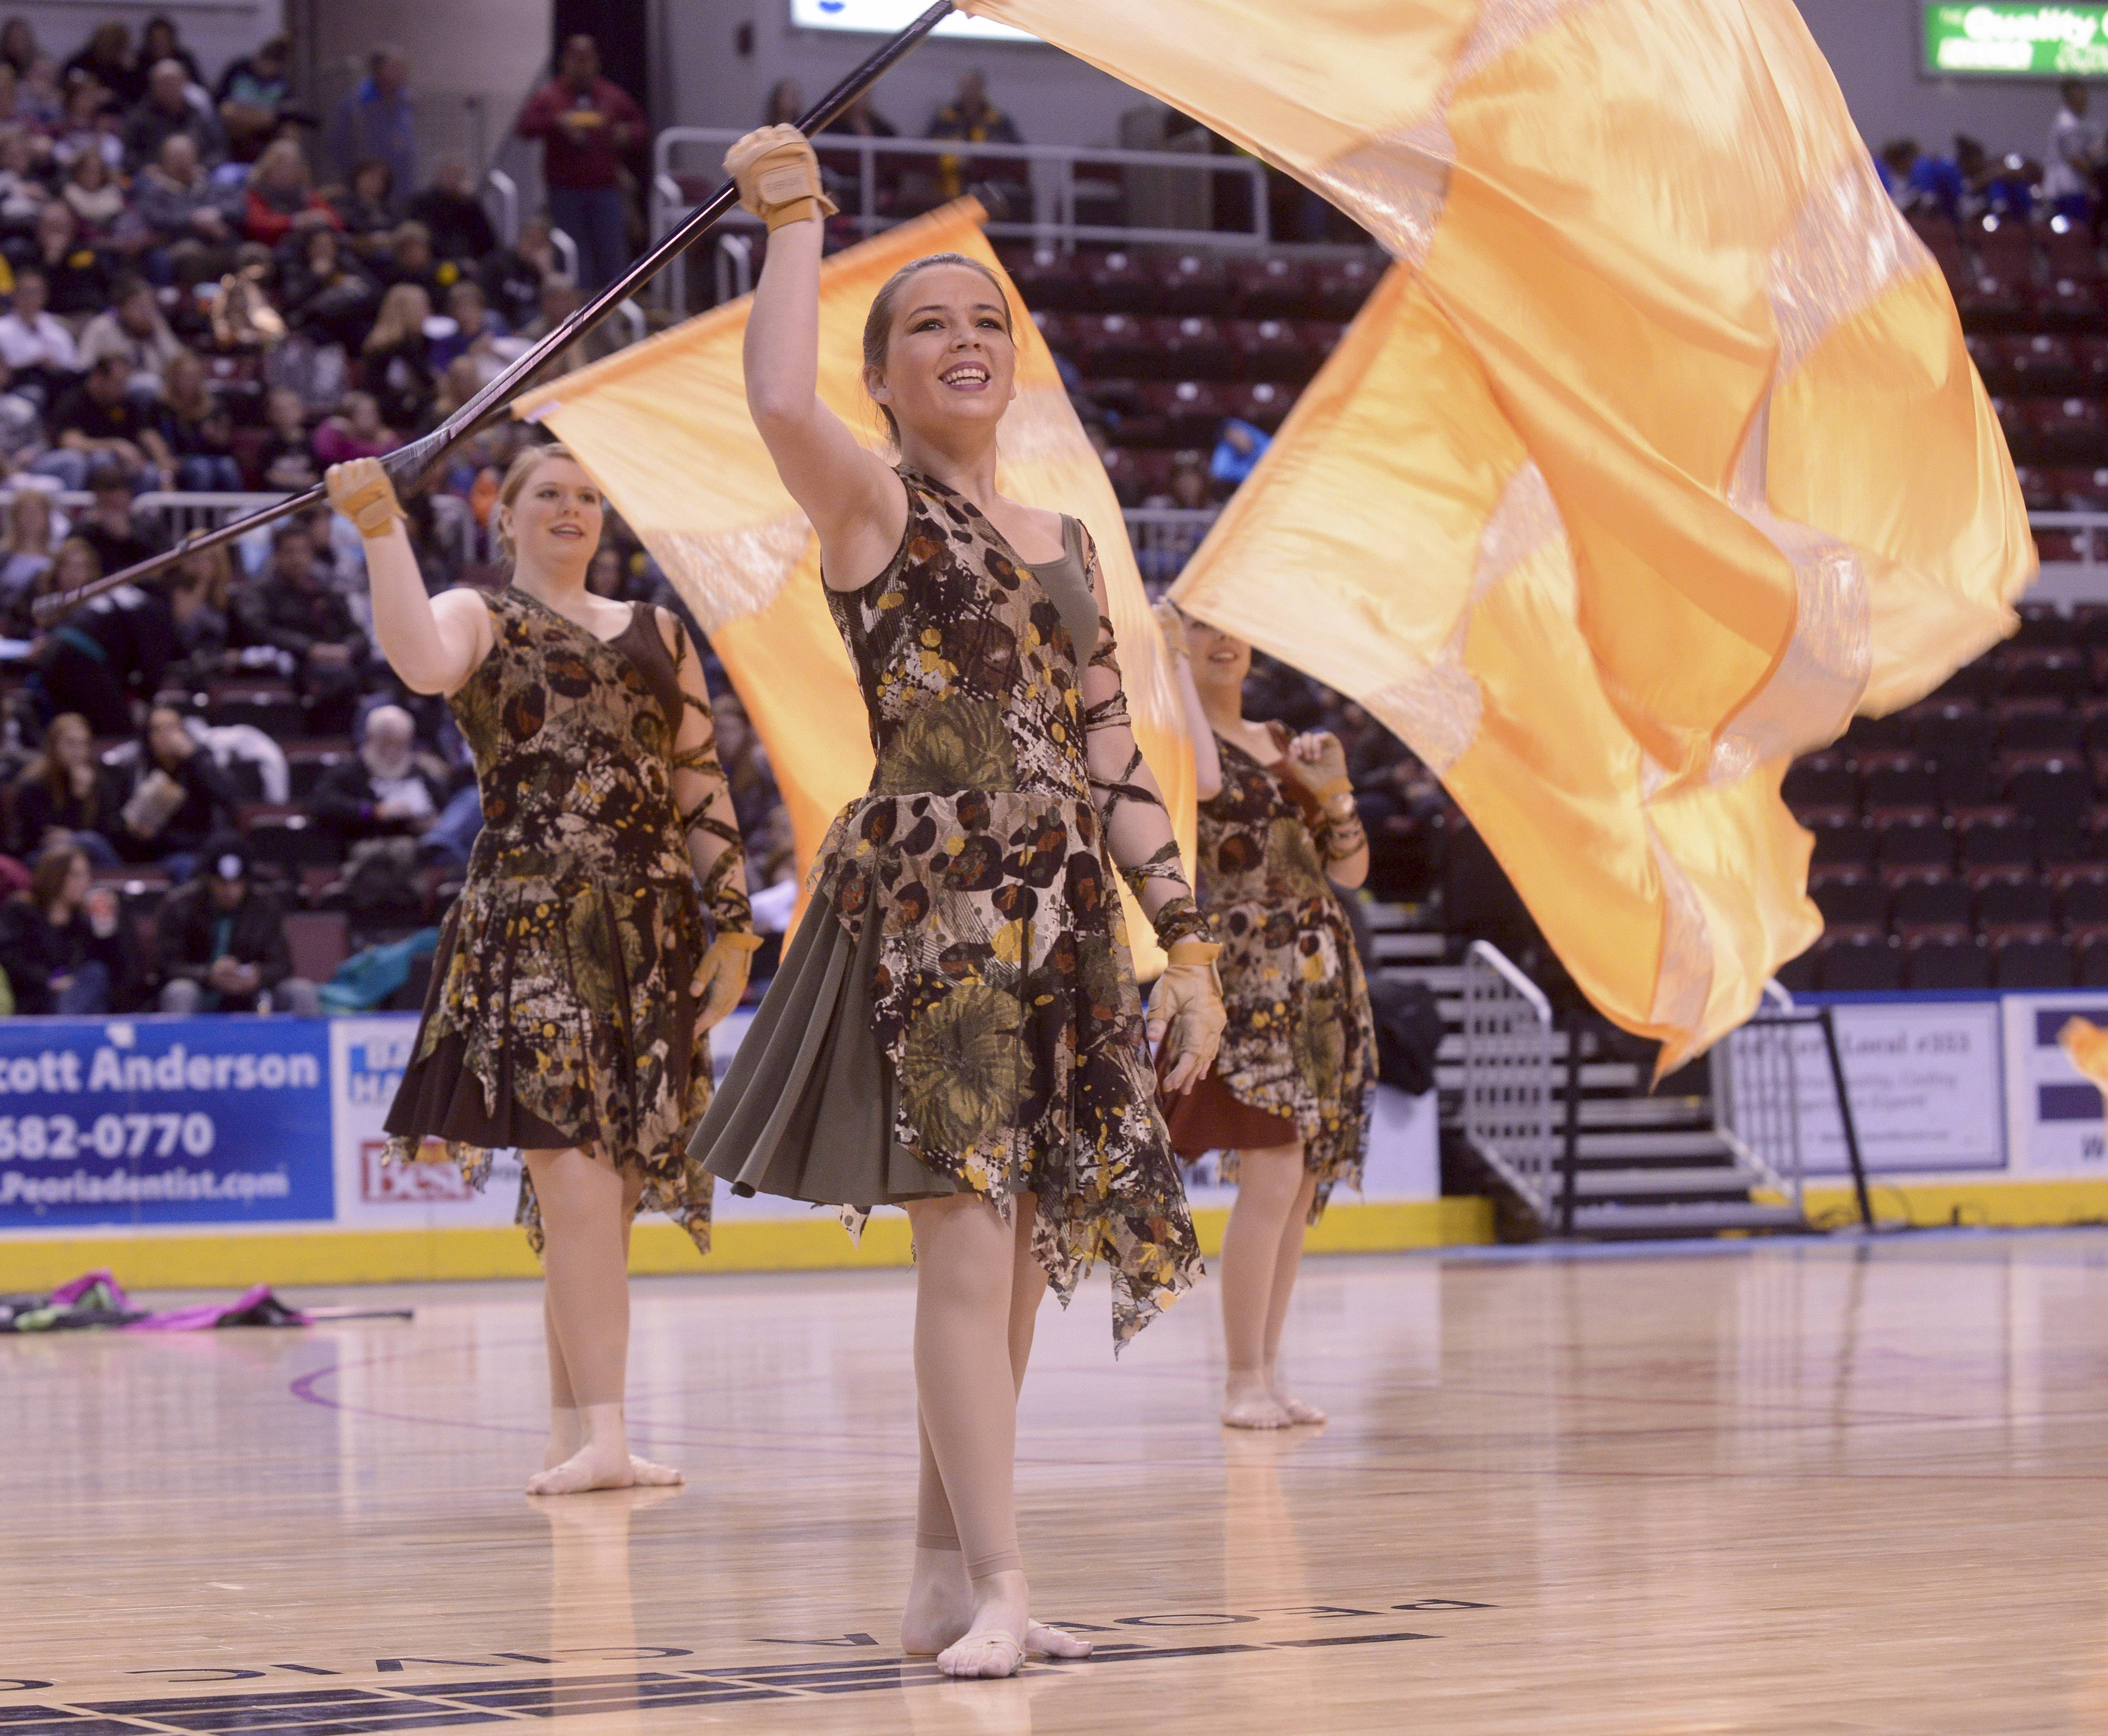 Stevenson High School performs in the Varsity Flag Lyrical Flag category during the TEAMDance Illinois 2014 Grand Championship in Peoria, Sunday March 2nd.